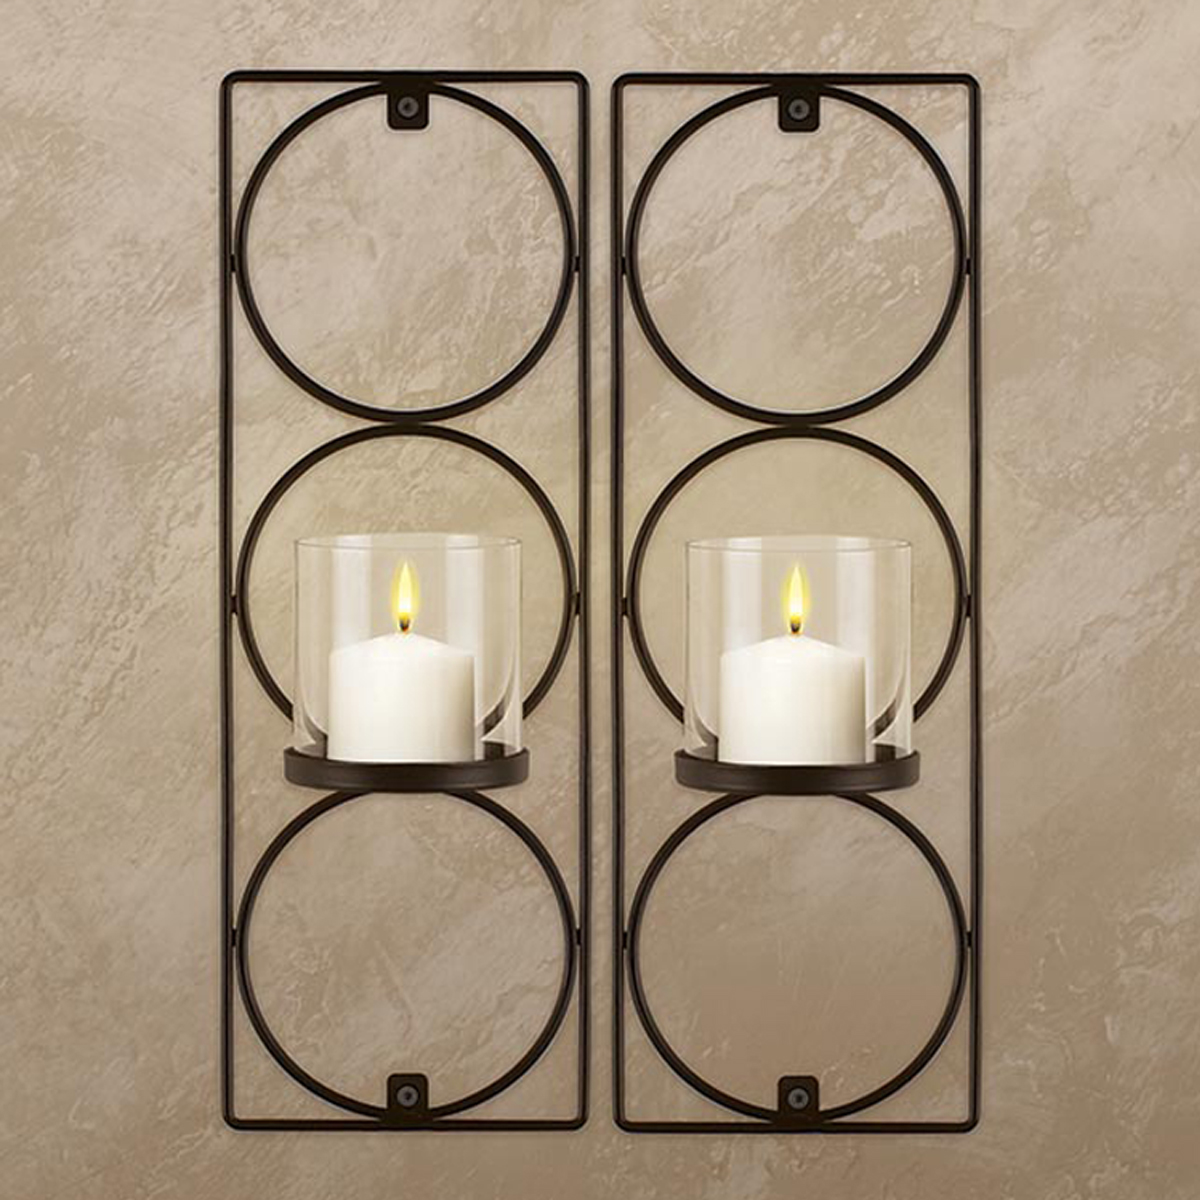 Set Of 2 Metal Wall Sconces Sarah Peyton Hanging Candle ... on Decorative Wall Sconces Candle Holders Centerpieces Ebay id=33945